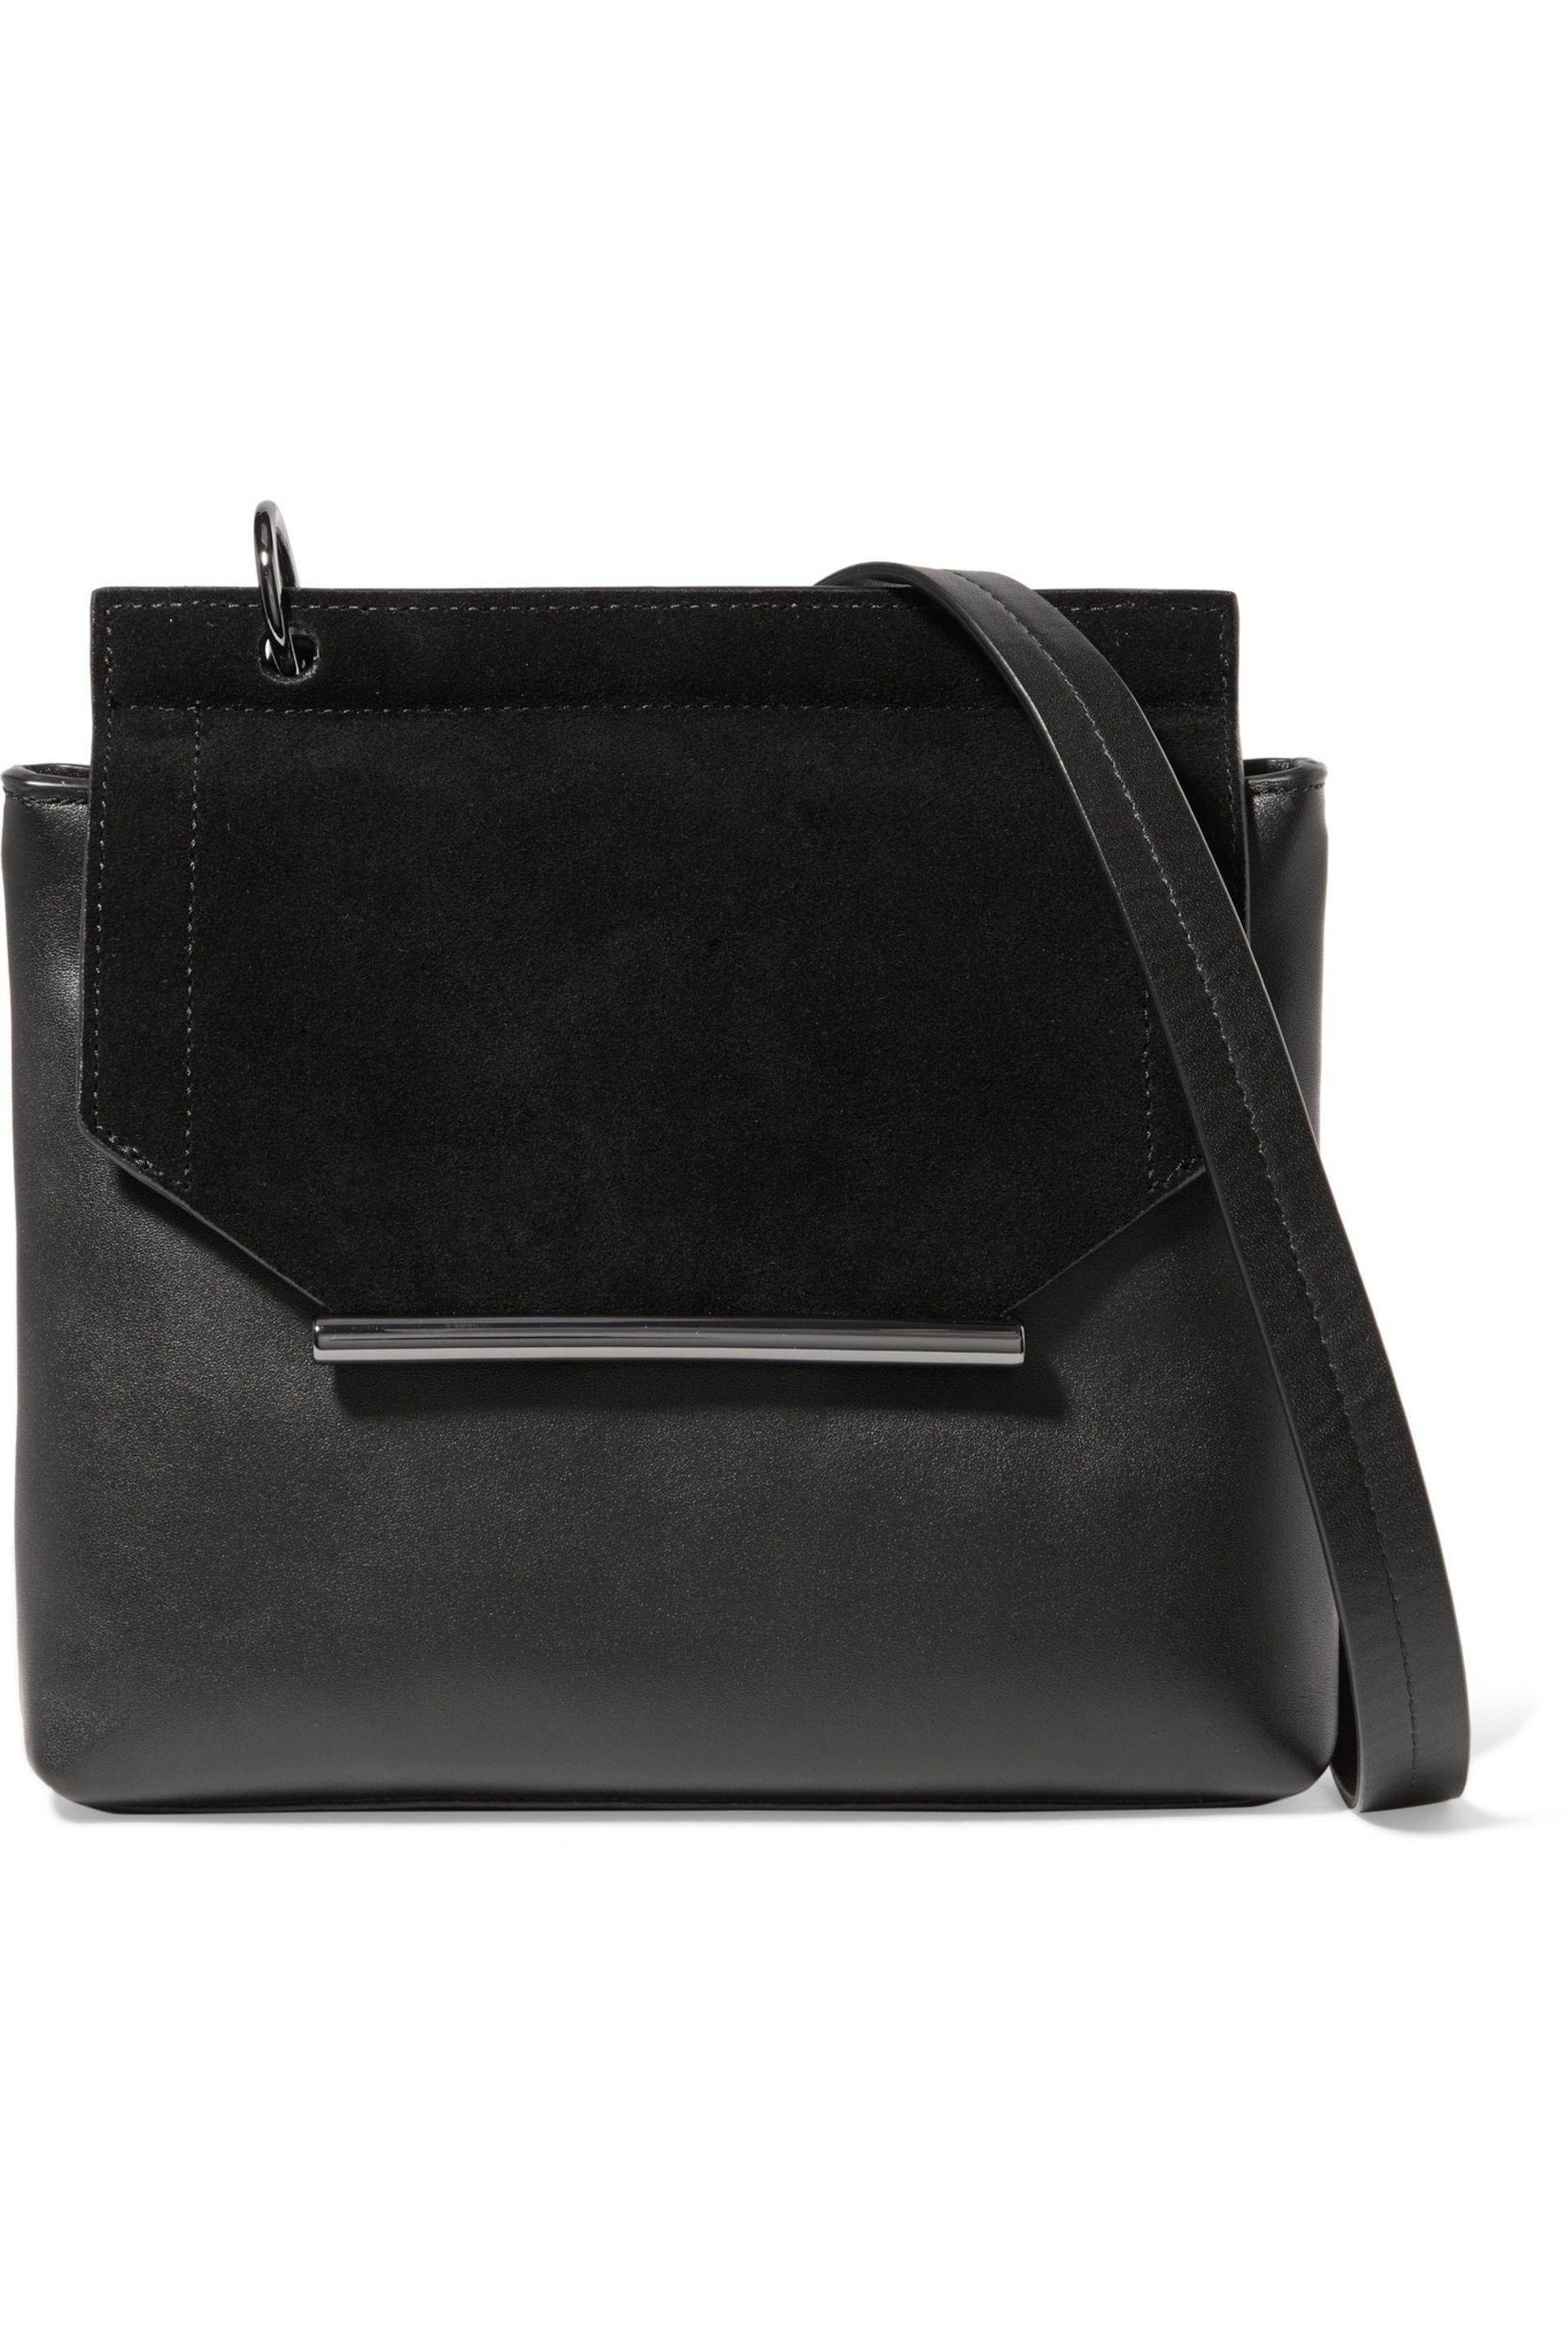 3769e41b37c7 Lyst - Halston Suede And Leather Shoulder Bag in Black